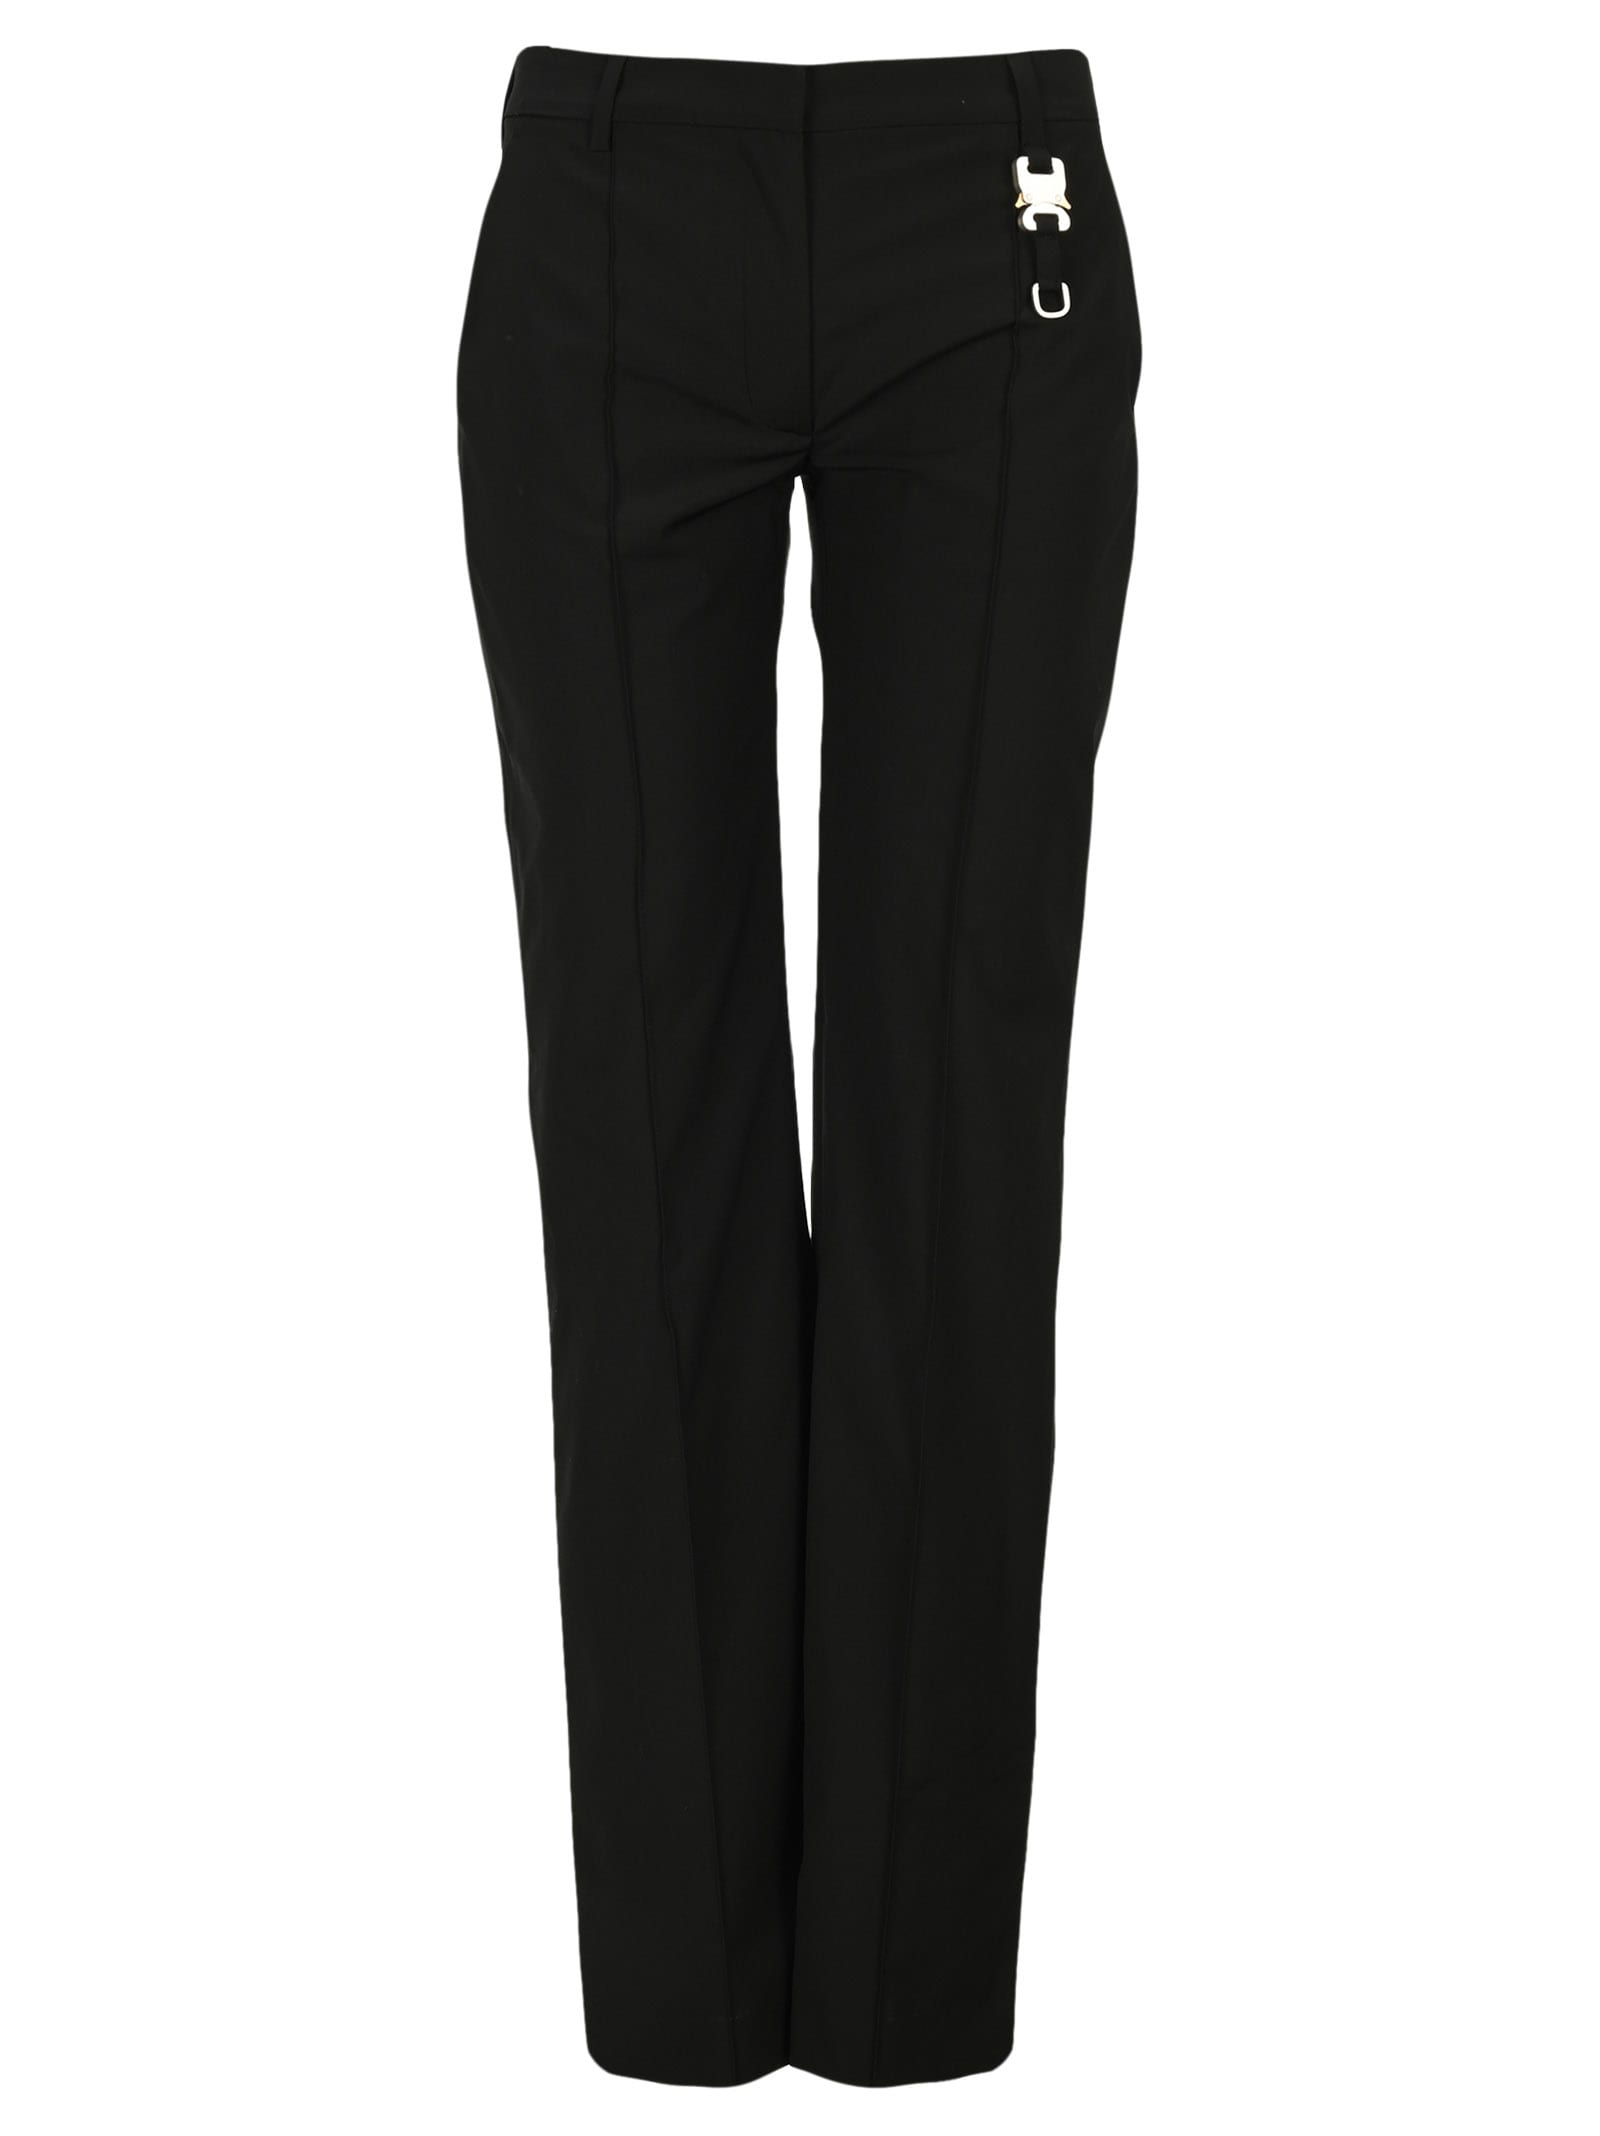 Alyx ALYX WIDE LEG TAILORED PANTS